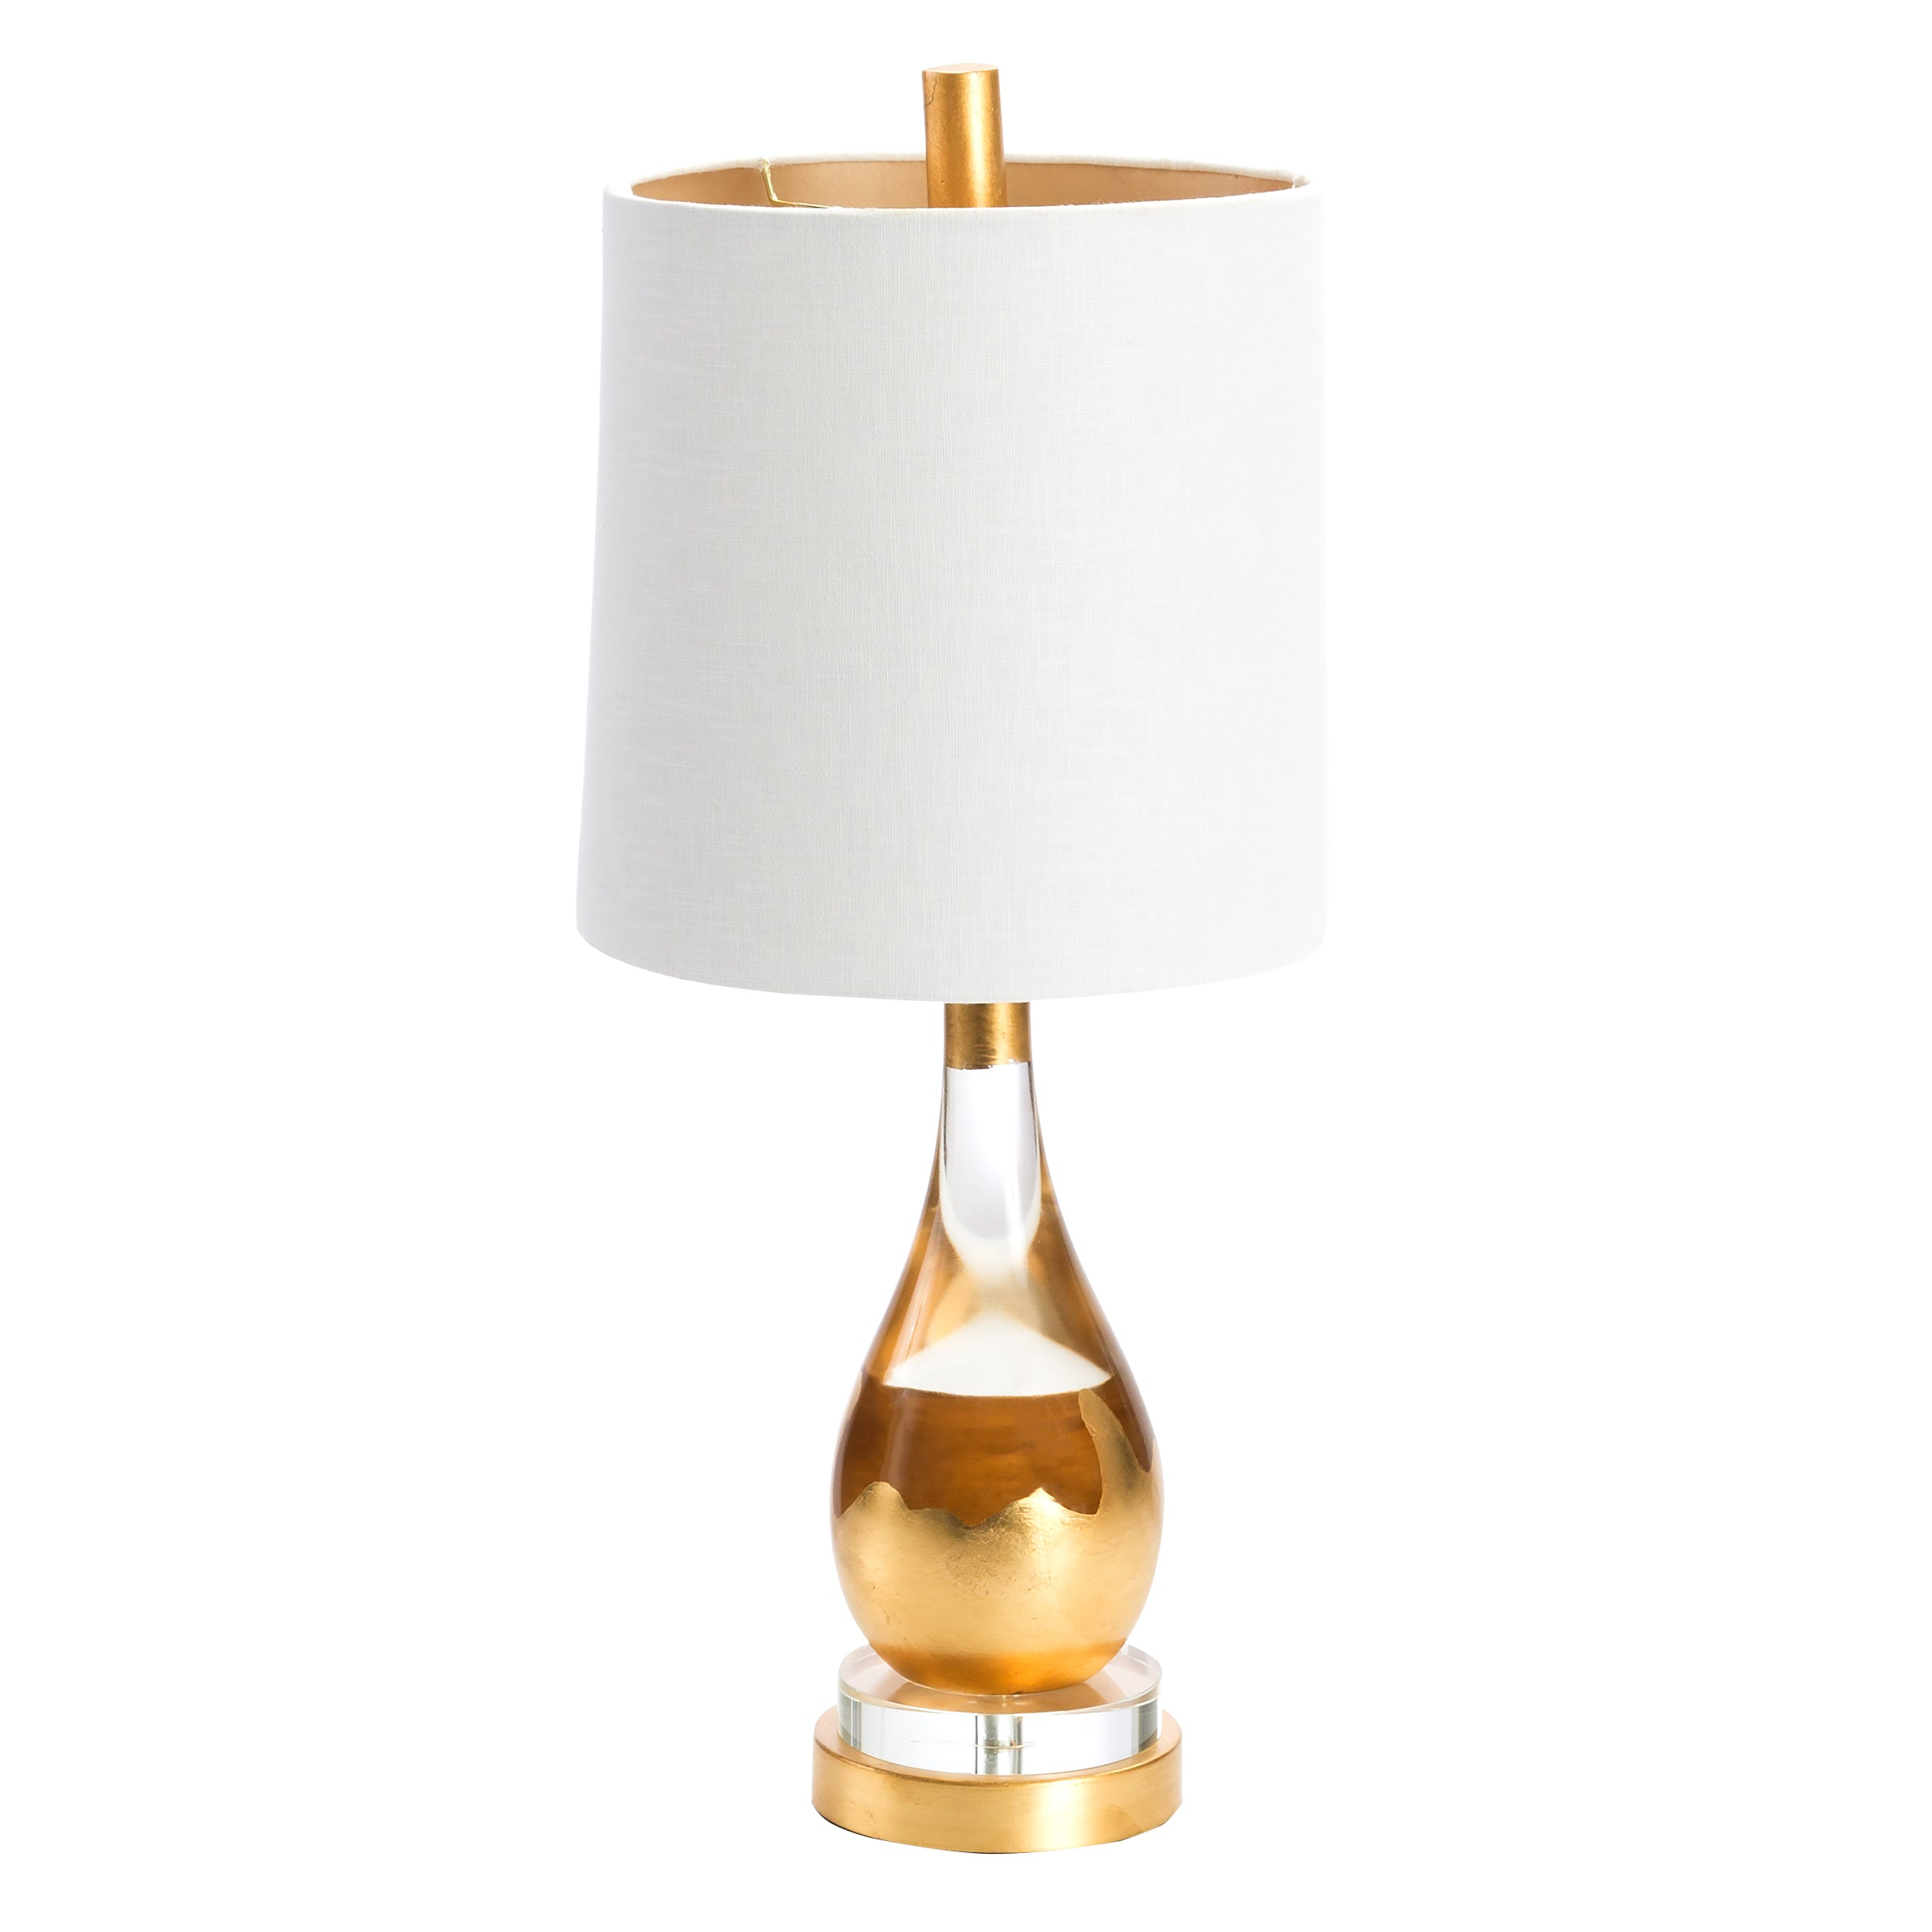 Marabella Table Lamp - Couture Lamps